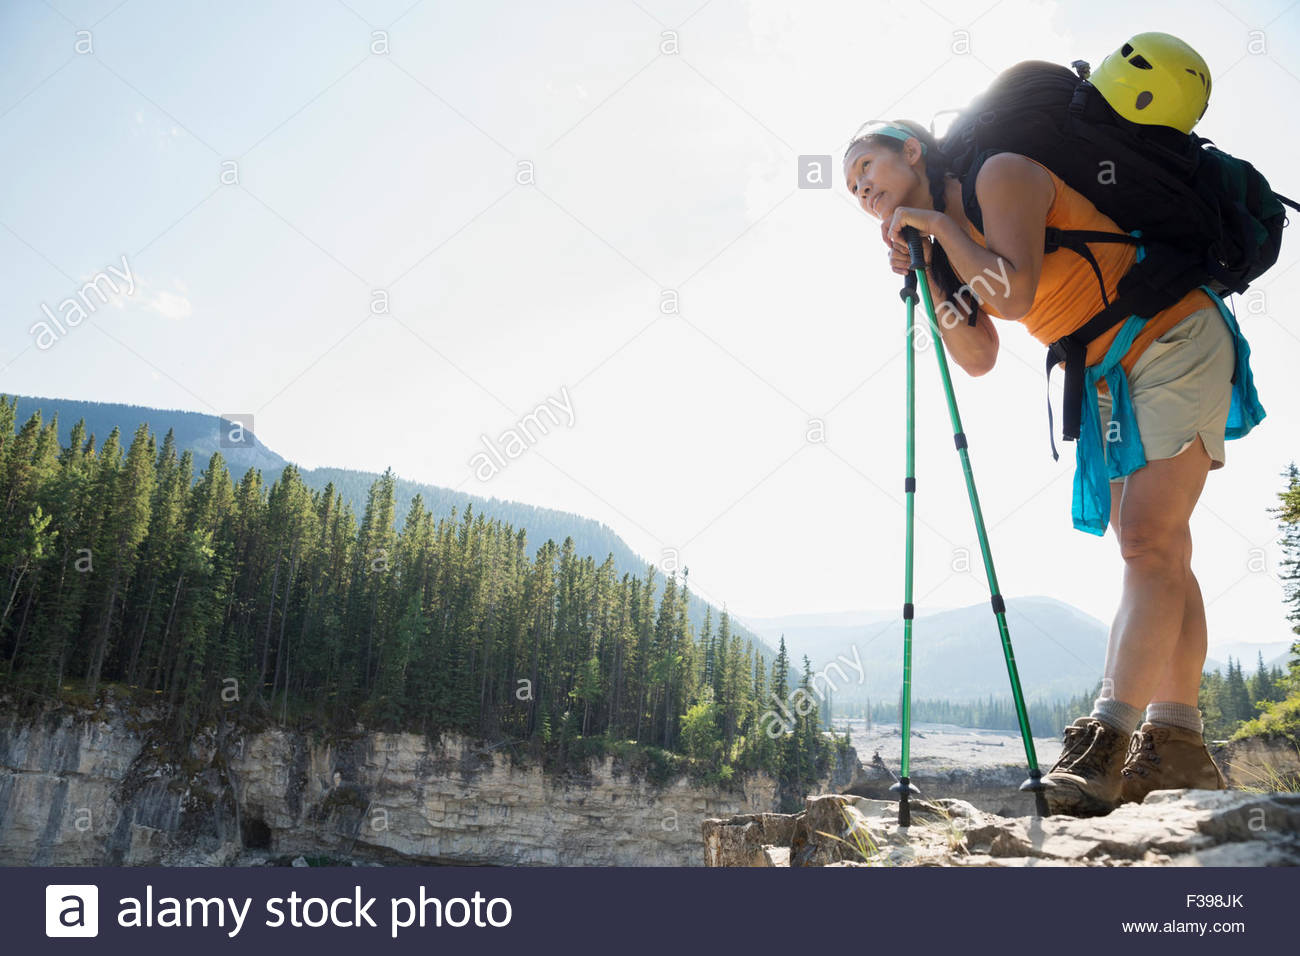 Woman backpacking leaning on hiking poles - Stock Image